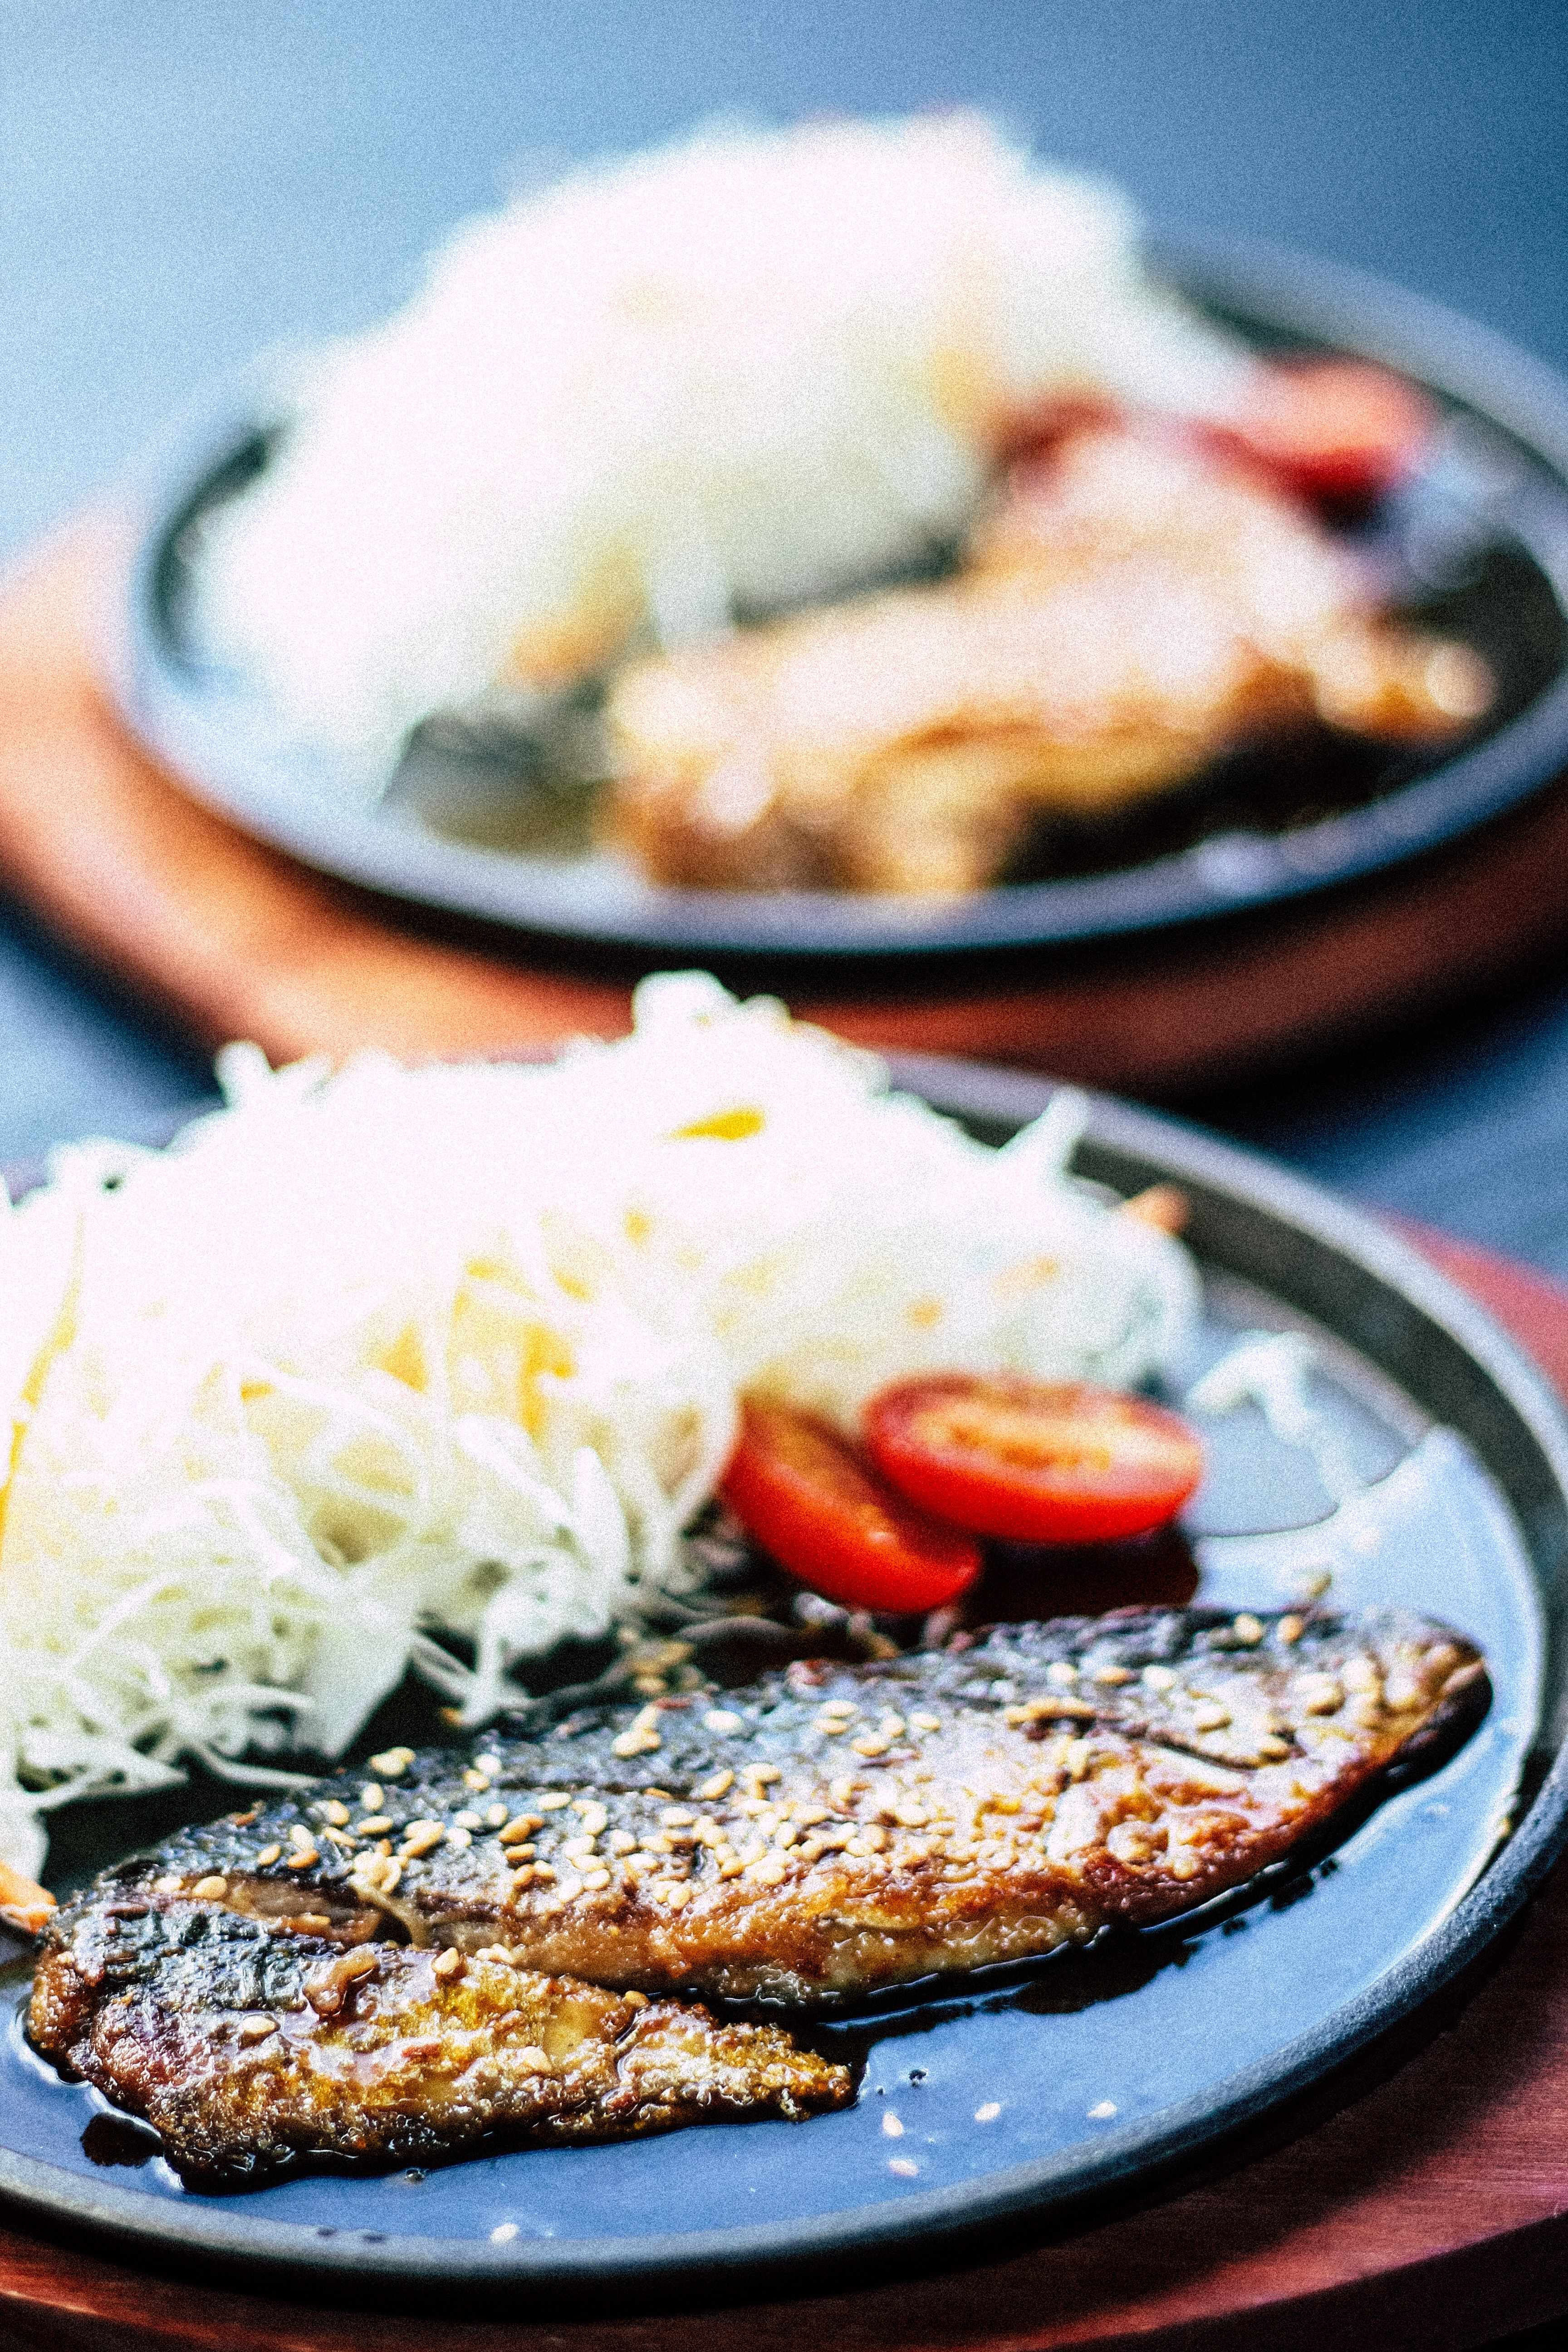 fried fish with tomato